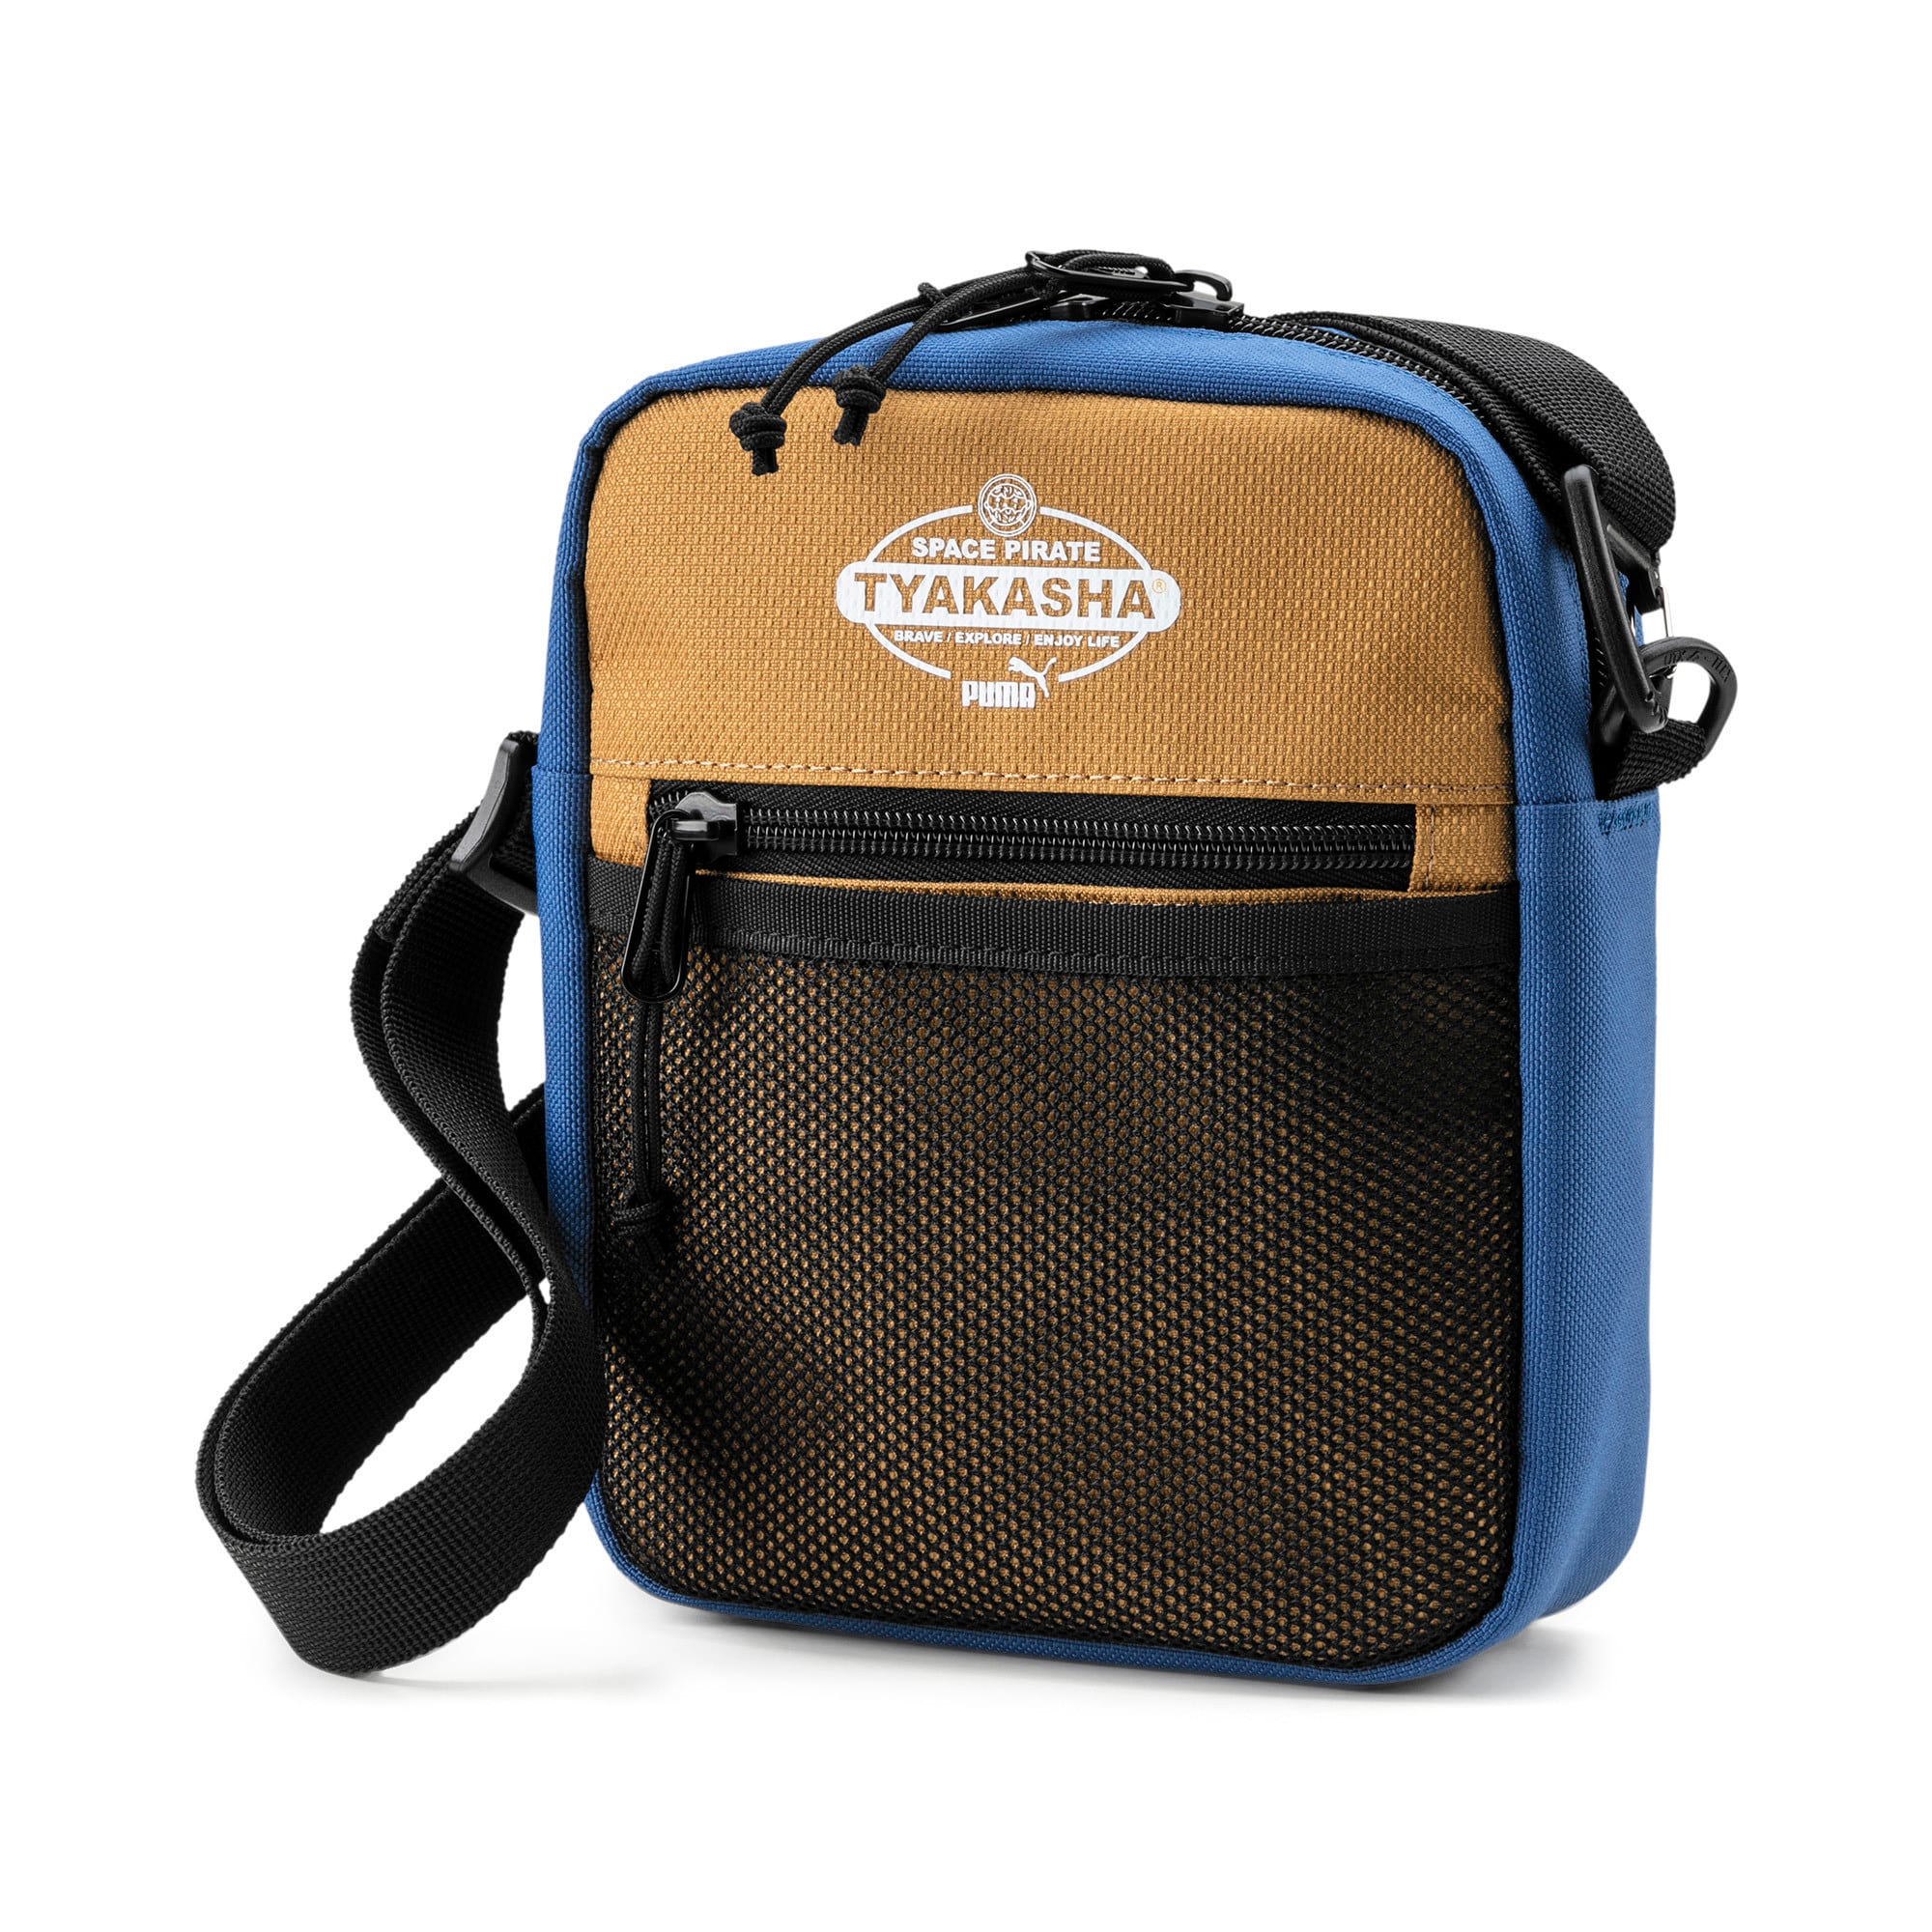 Thumbnail 1 of PUMA x TYAKASHA Shoulder bag, G.Blue-F.Brick-B.Brown, medium